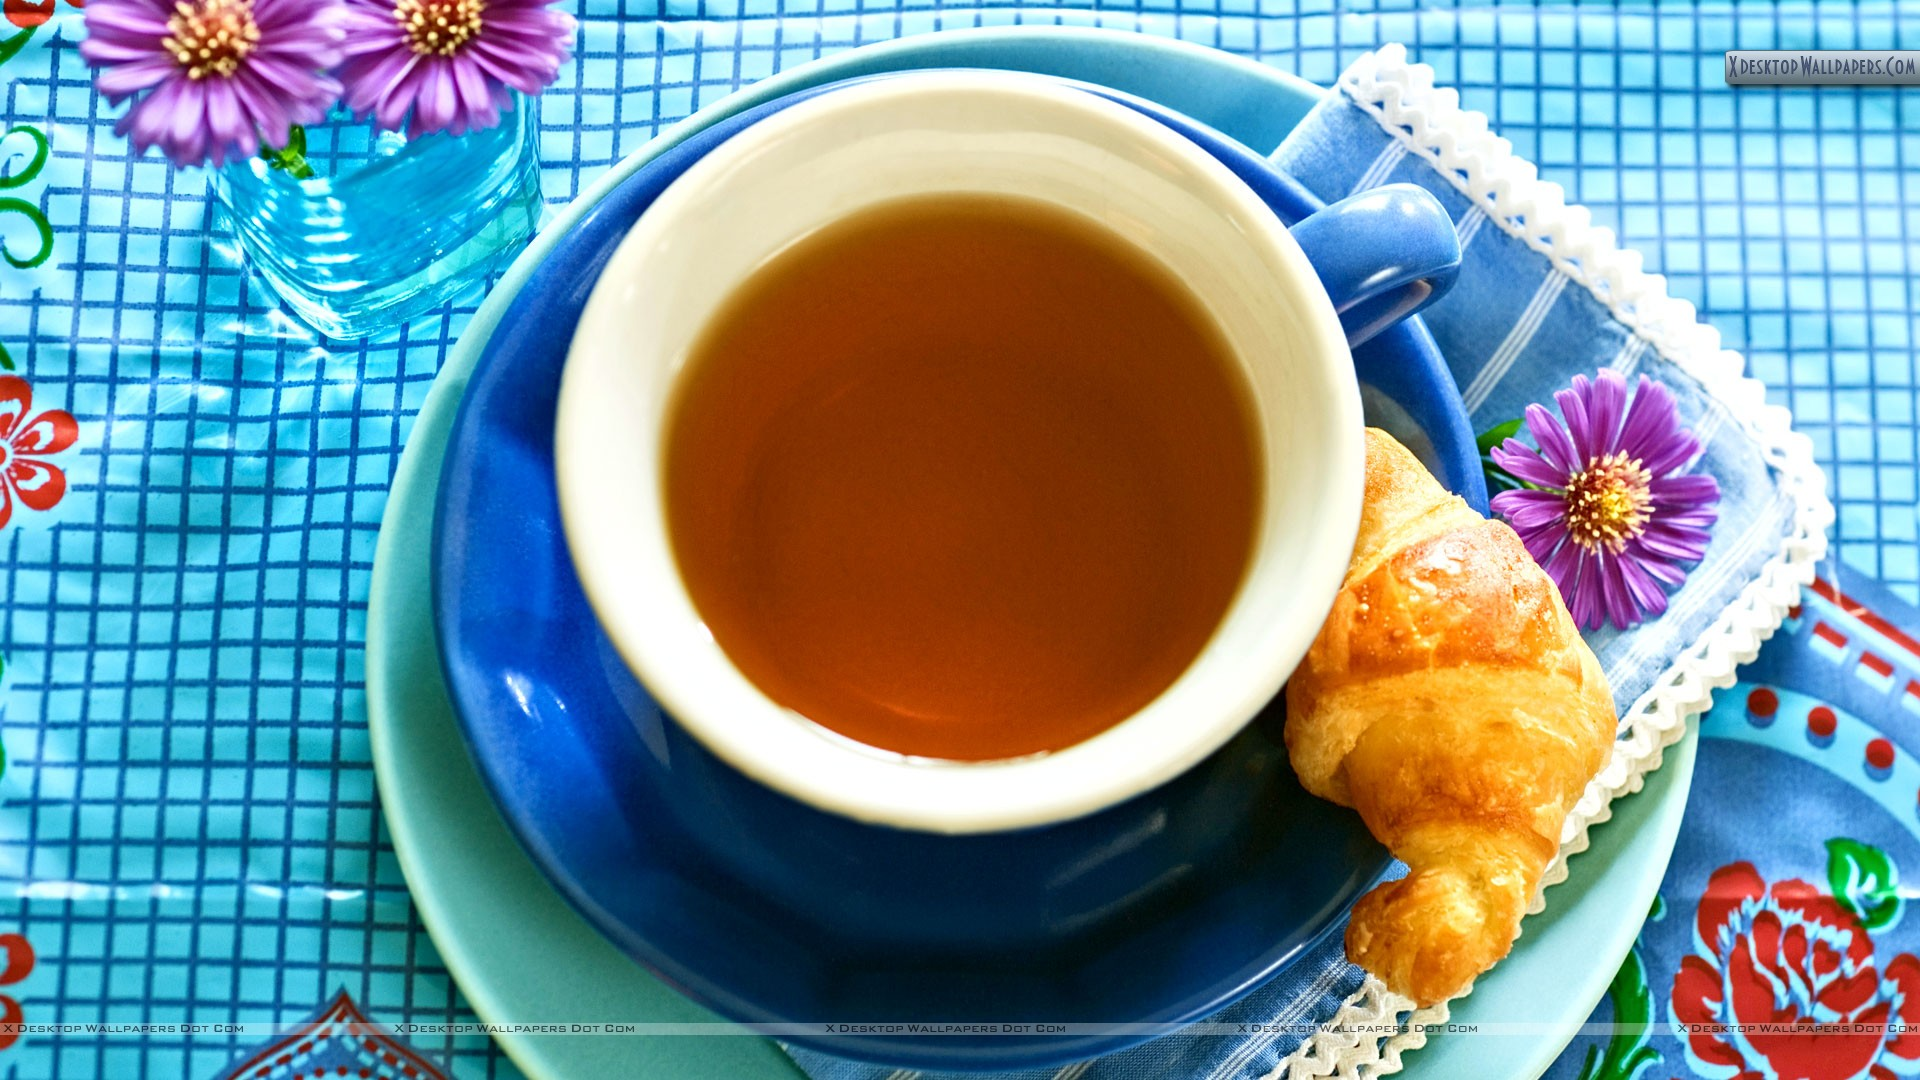 You Are Viewing Wallpaper Titled Fresh Tea Of Morning